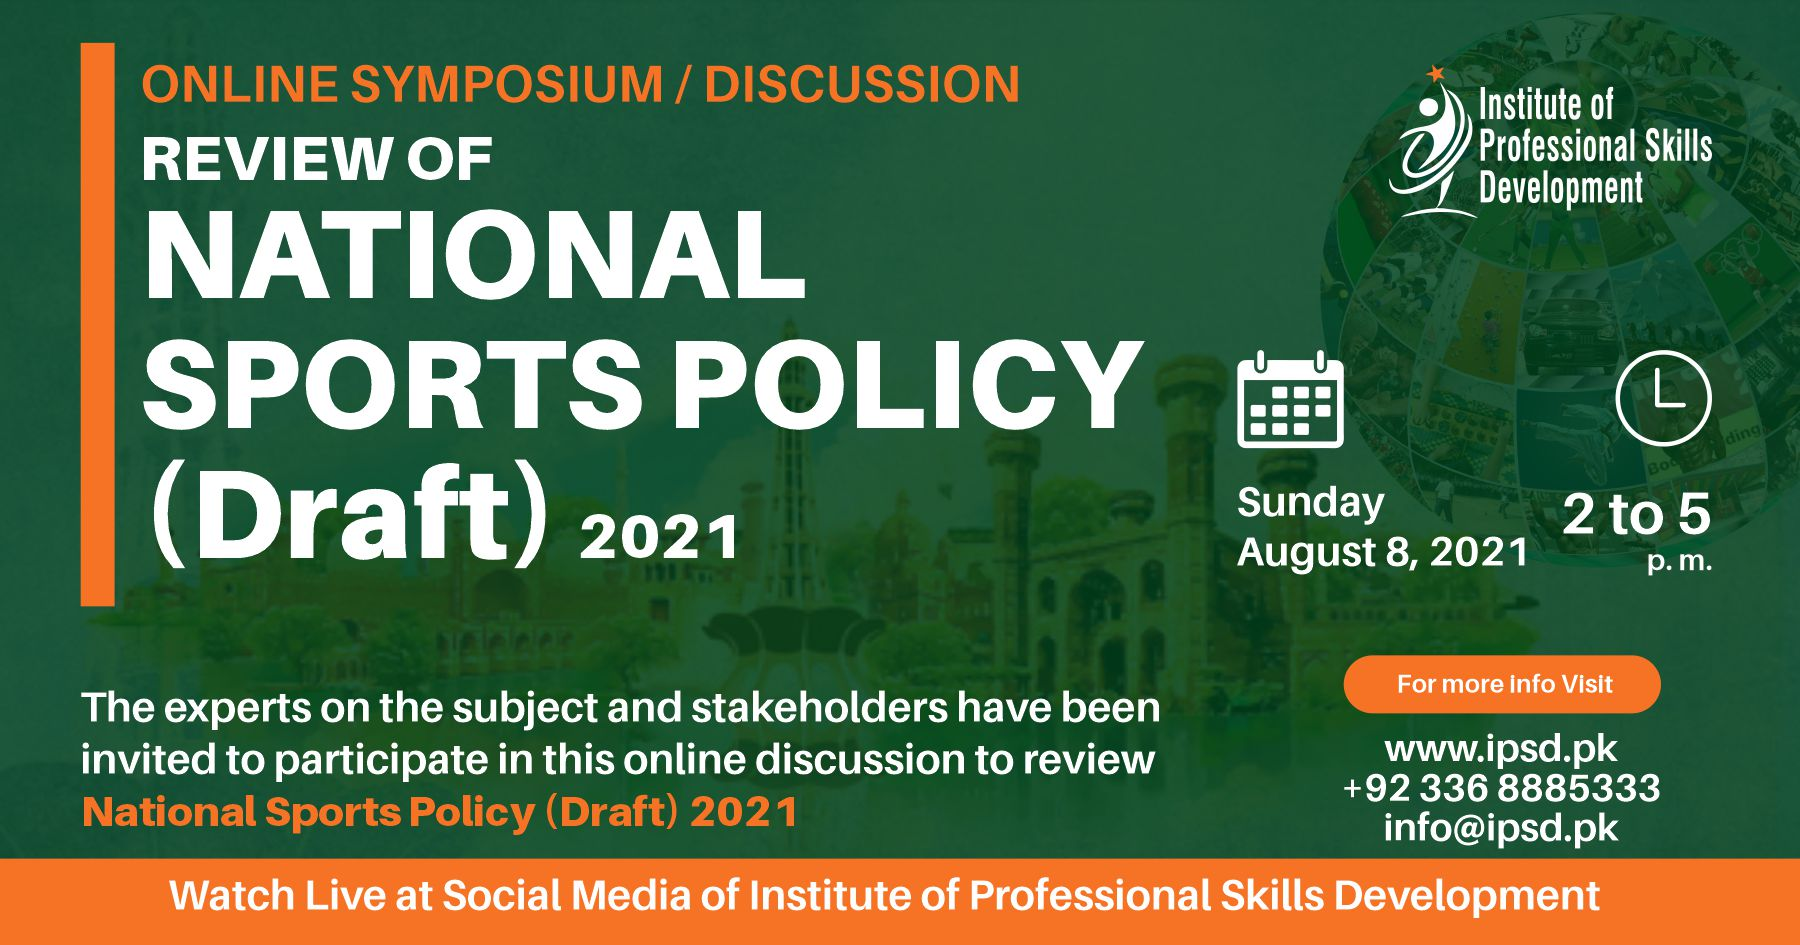 Review of National Sports Policy (Draft) 2021 – Online Symposium / Discussion